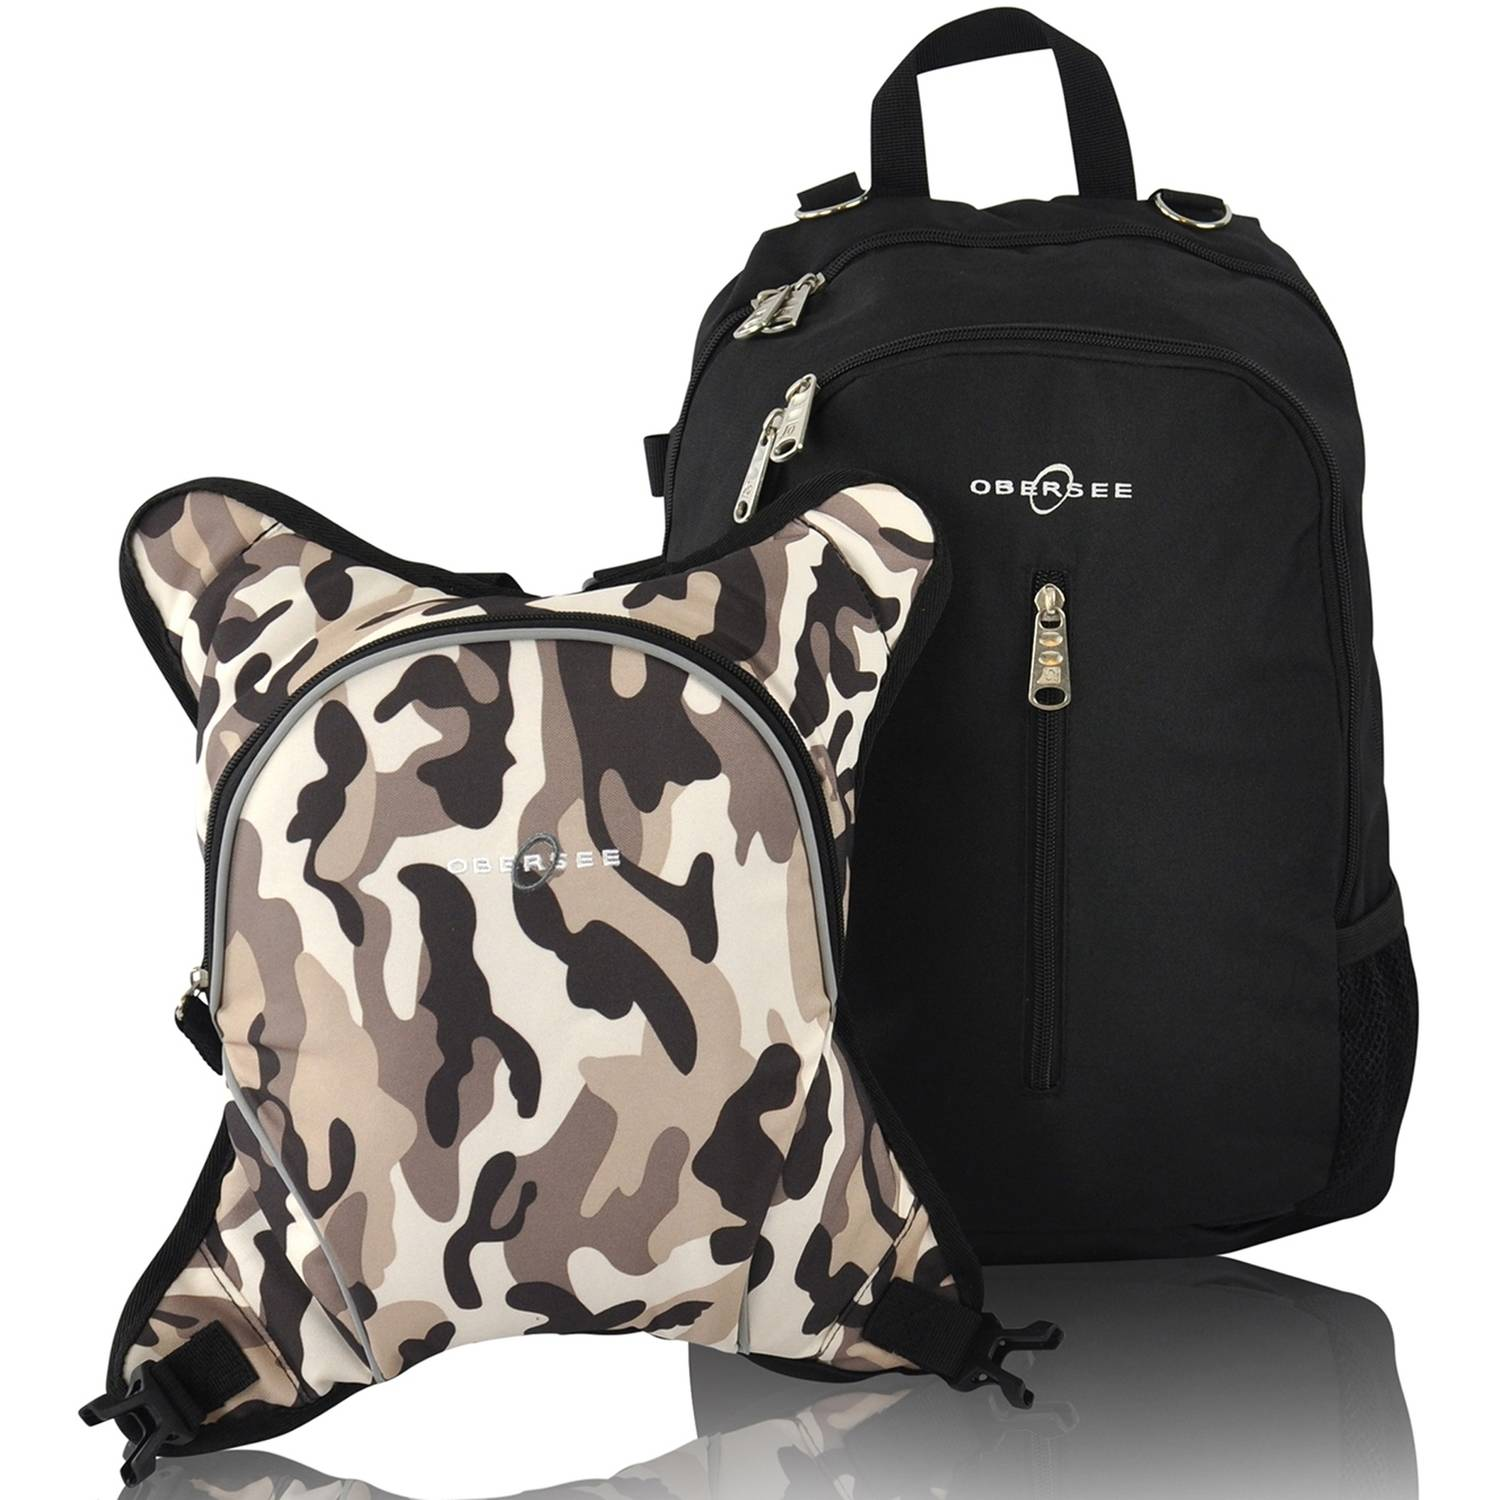 Obersee Rio Diaper Bag Backpack with Detachable Cooler, Black/Camo